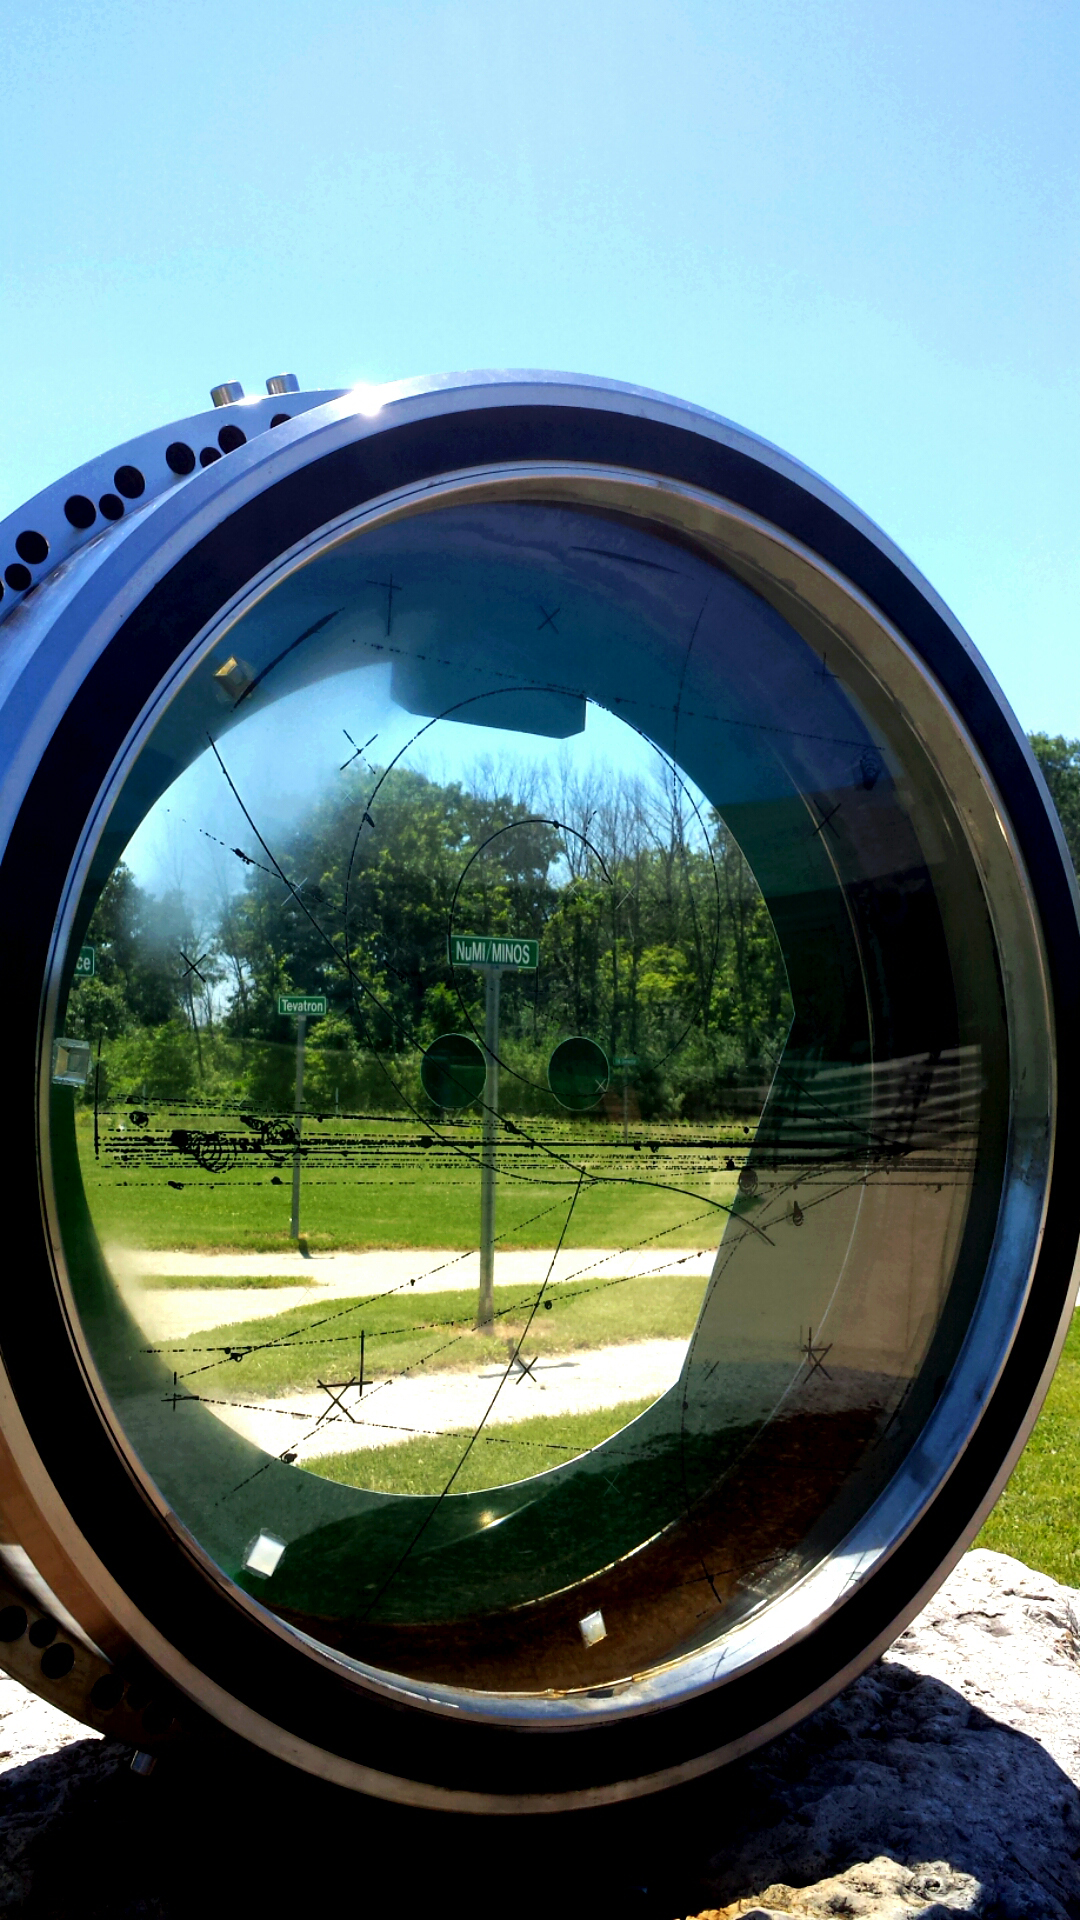 You can see road signs of Fermilab projects through the play bubble chamber. Photo: Mehreen Sultana, WDRS